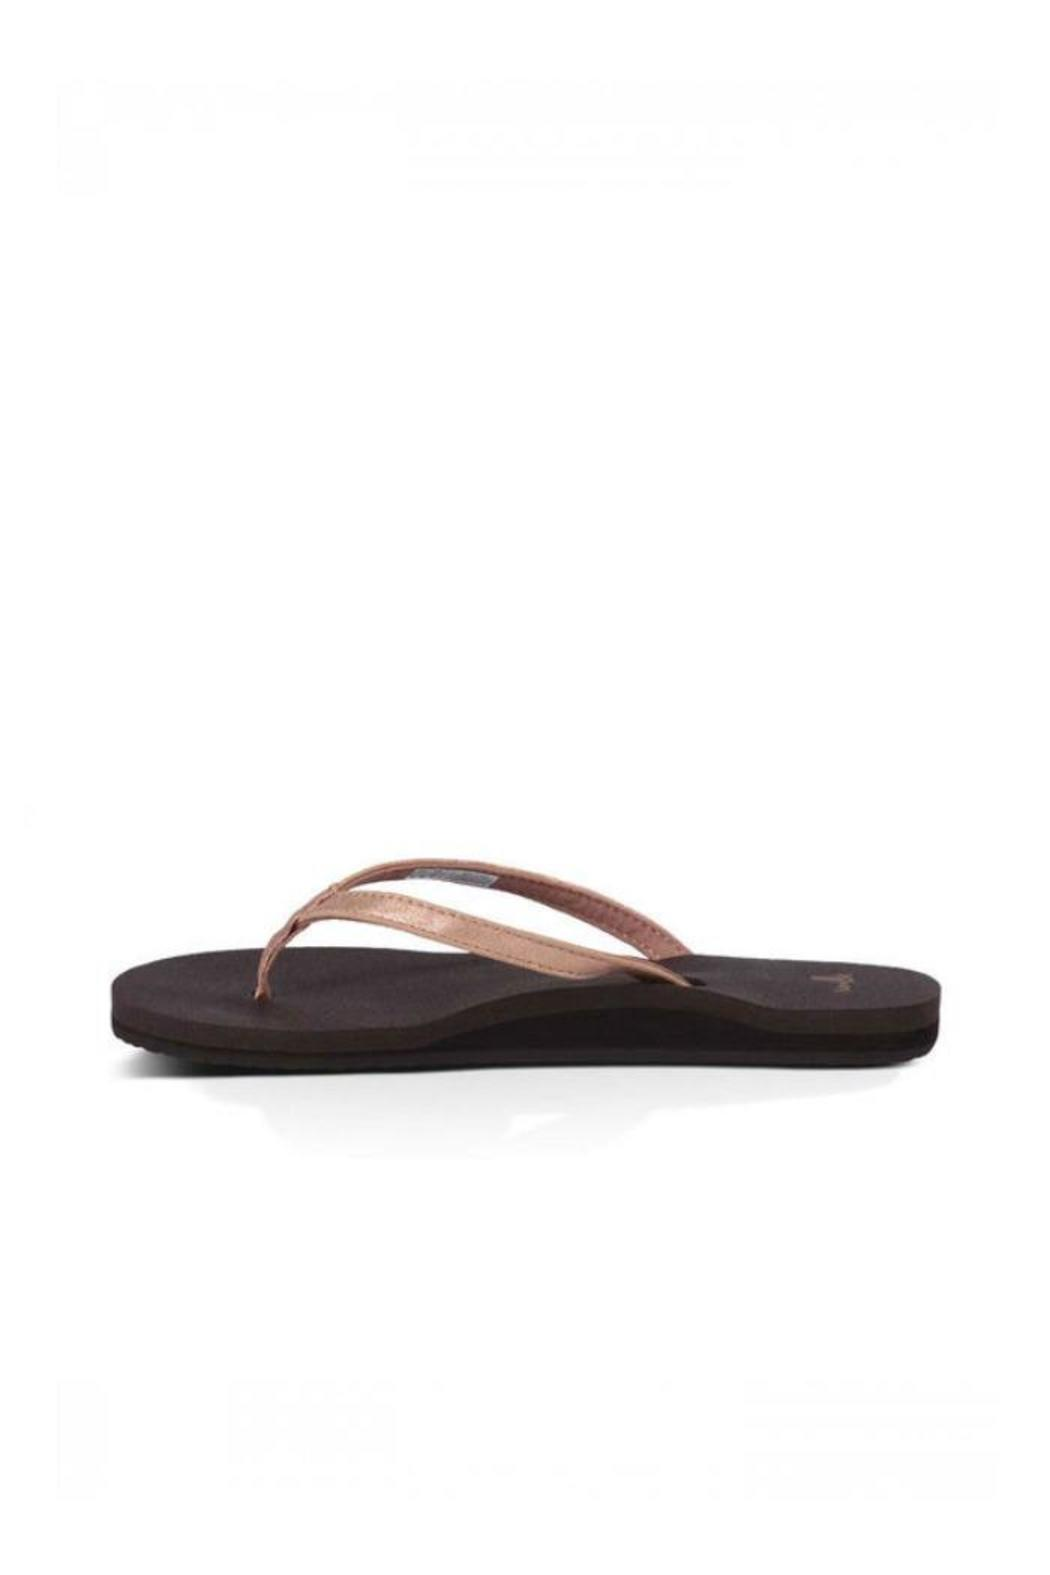 ebc4542316c2 Sanuk Yoga Joy Flip Flop from Tennessee by Lori s Family Footwear ...